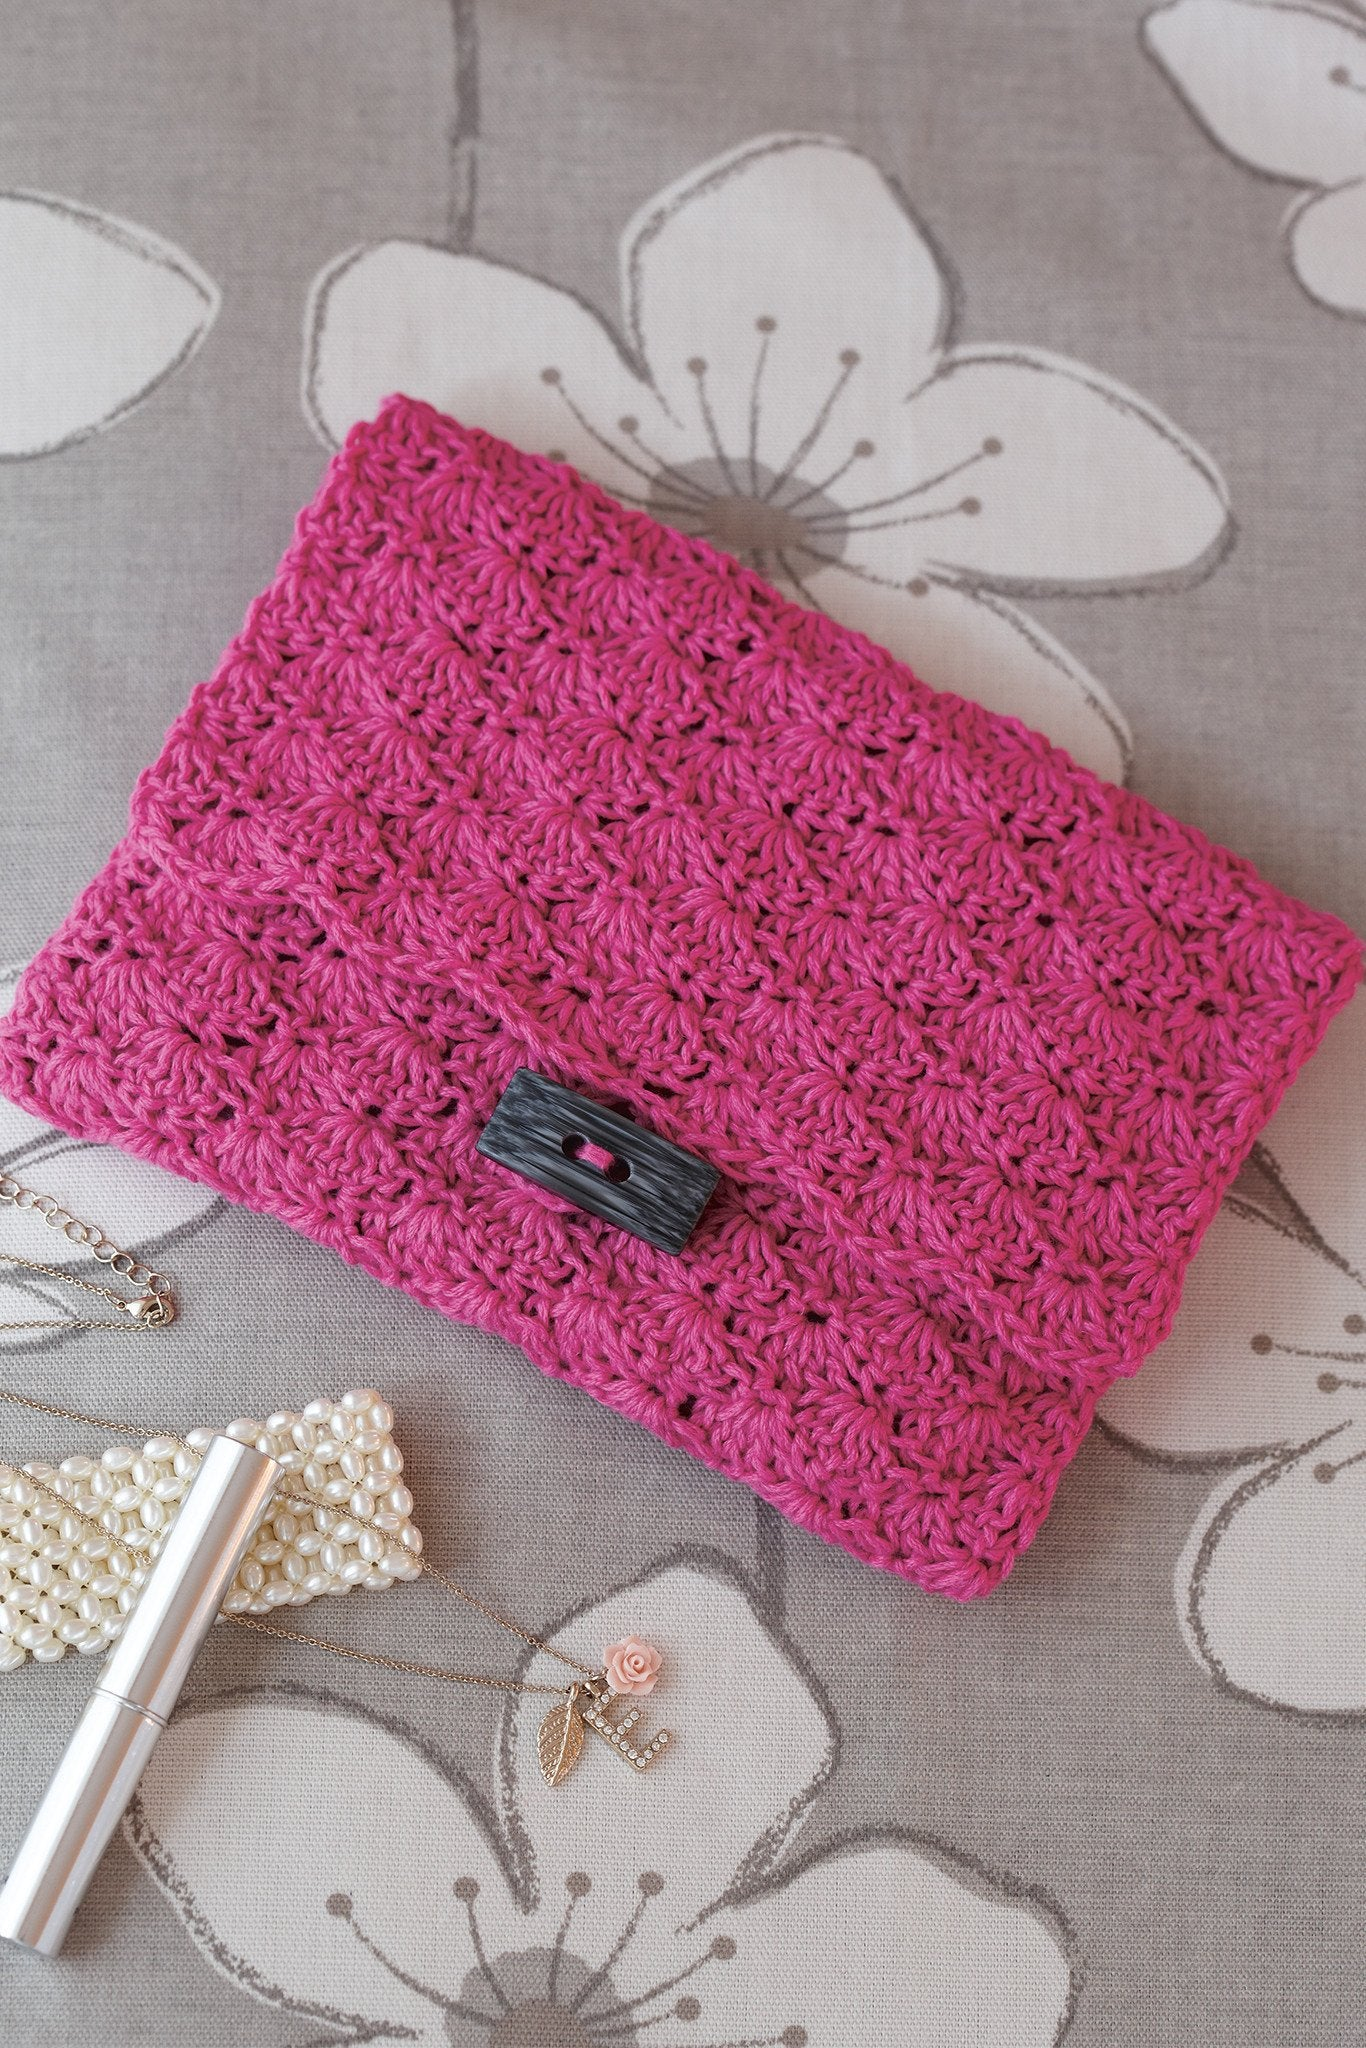 Evening clutch bag crochet pattern the knitting network evening clutch bag crochet pattern bankloansurffo Gallery